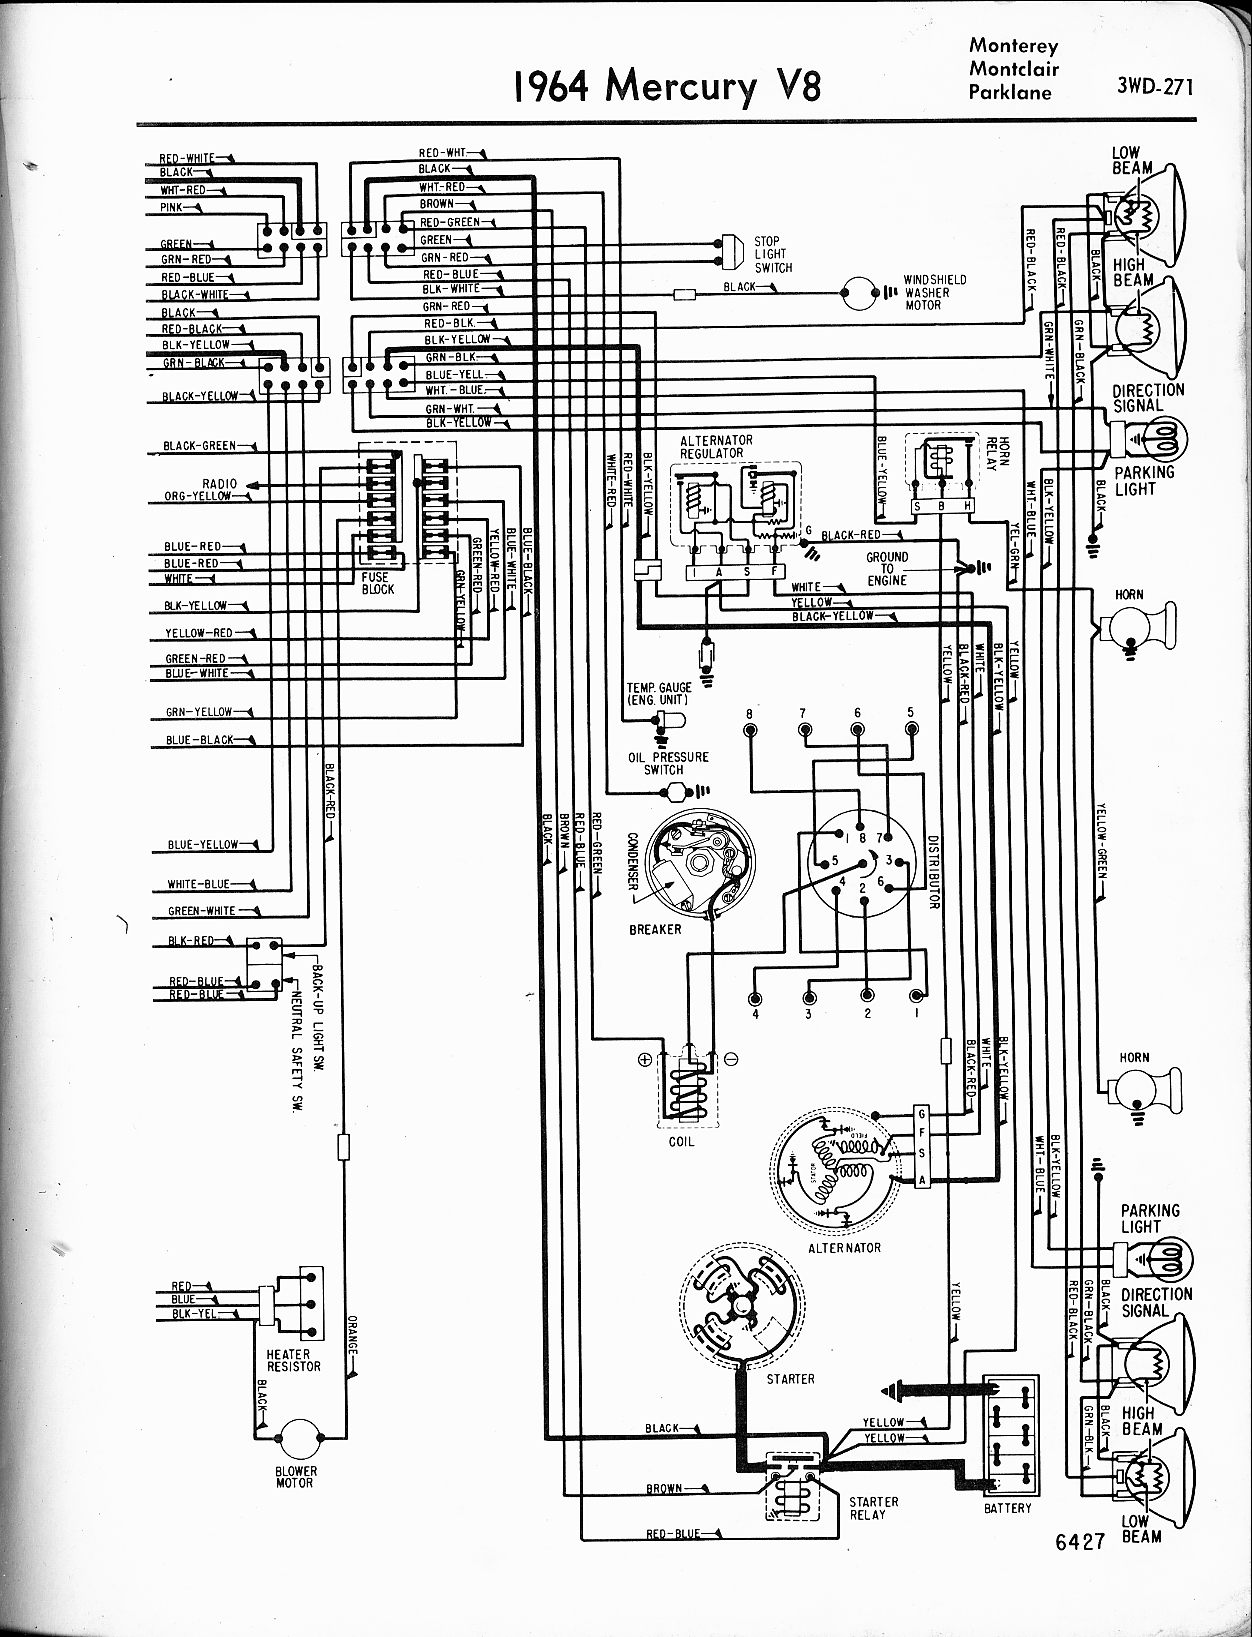 1964 mercury wiring diagram wiring diagrammercury wiring diagrams the old car manual project1964 v8 monterey, montclair, parklane, right